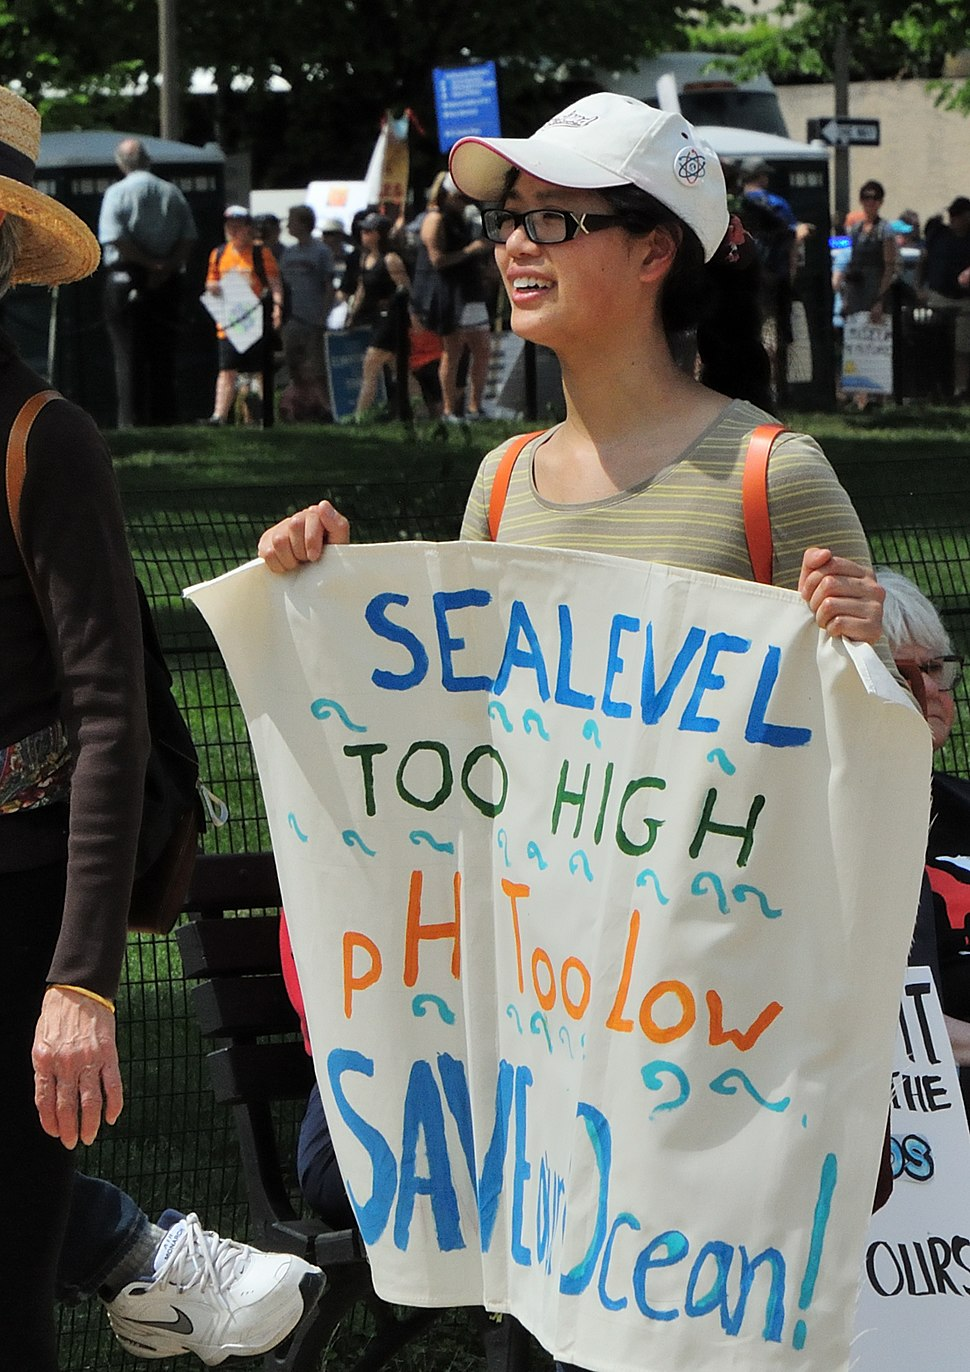 Save our ocean, People's Climate March, 29 April 2017 (cropped)